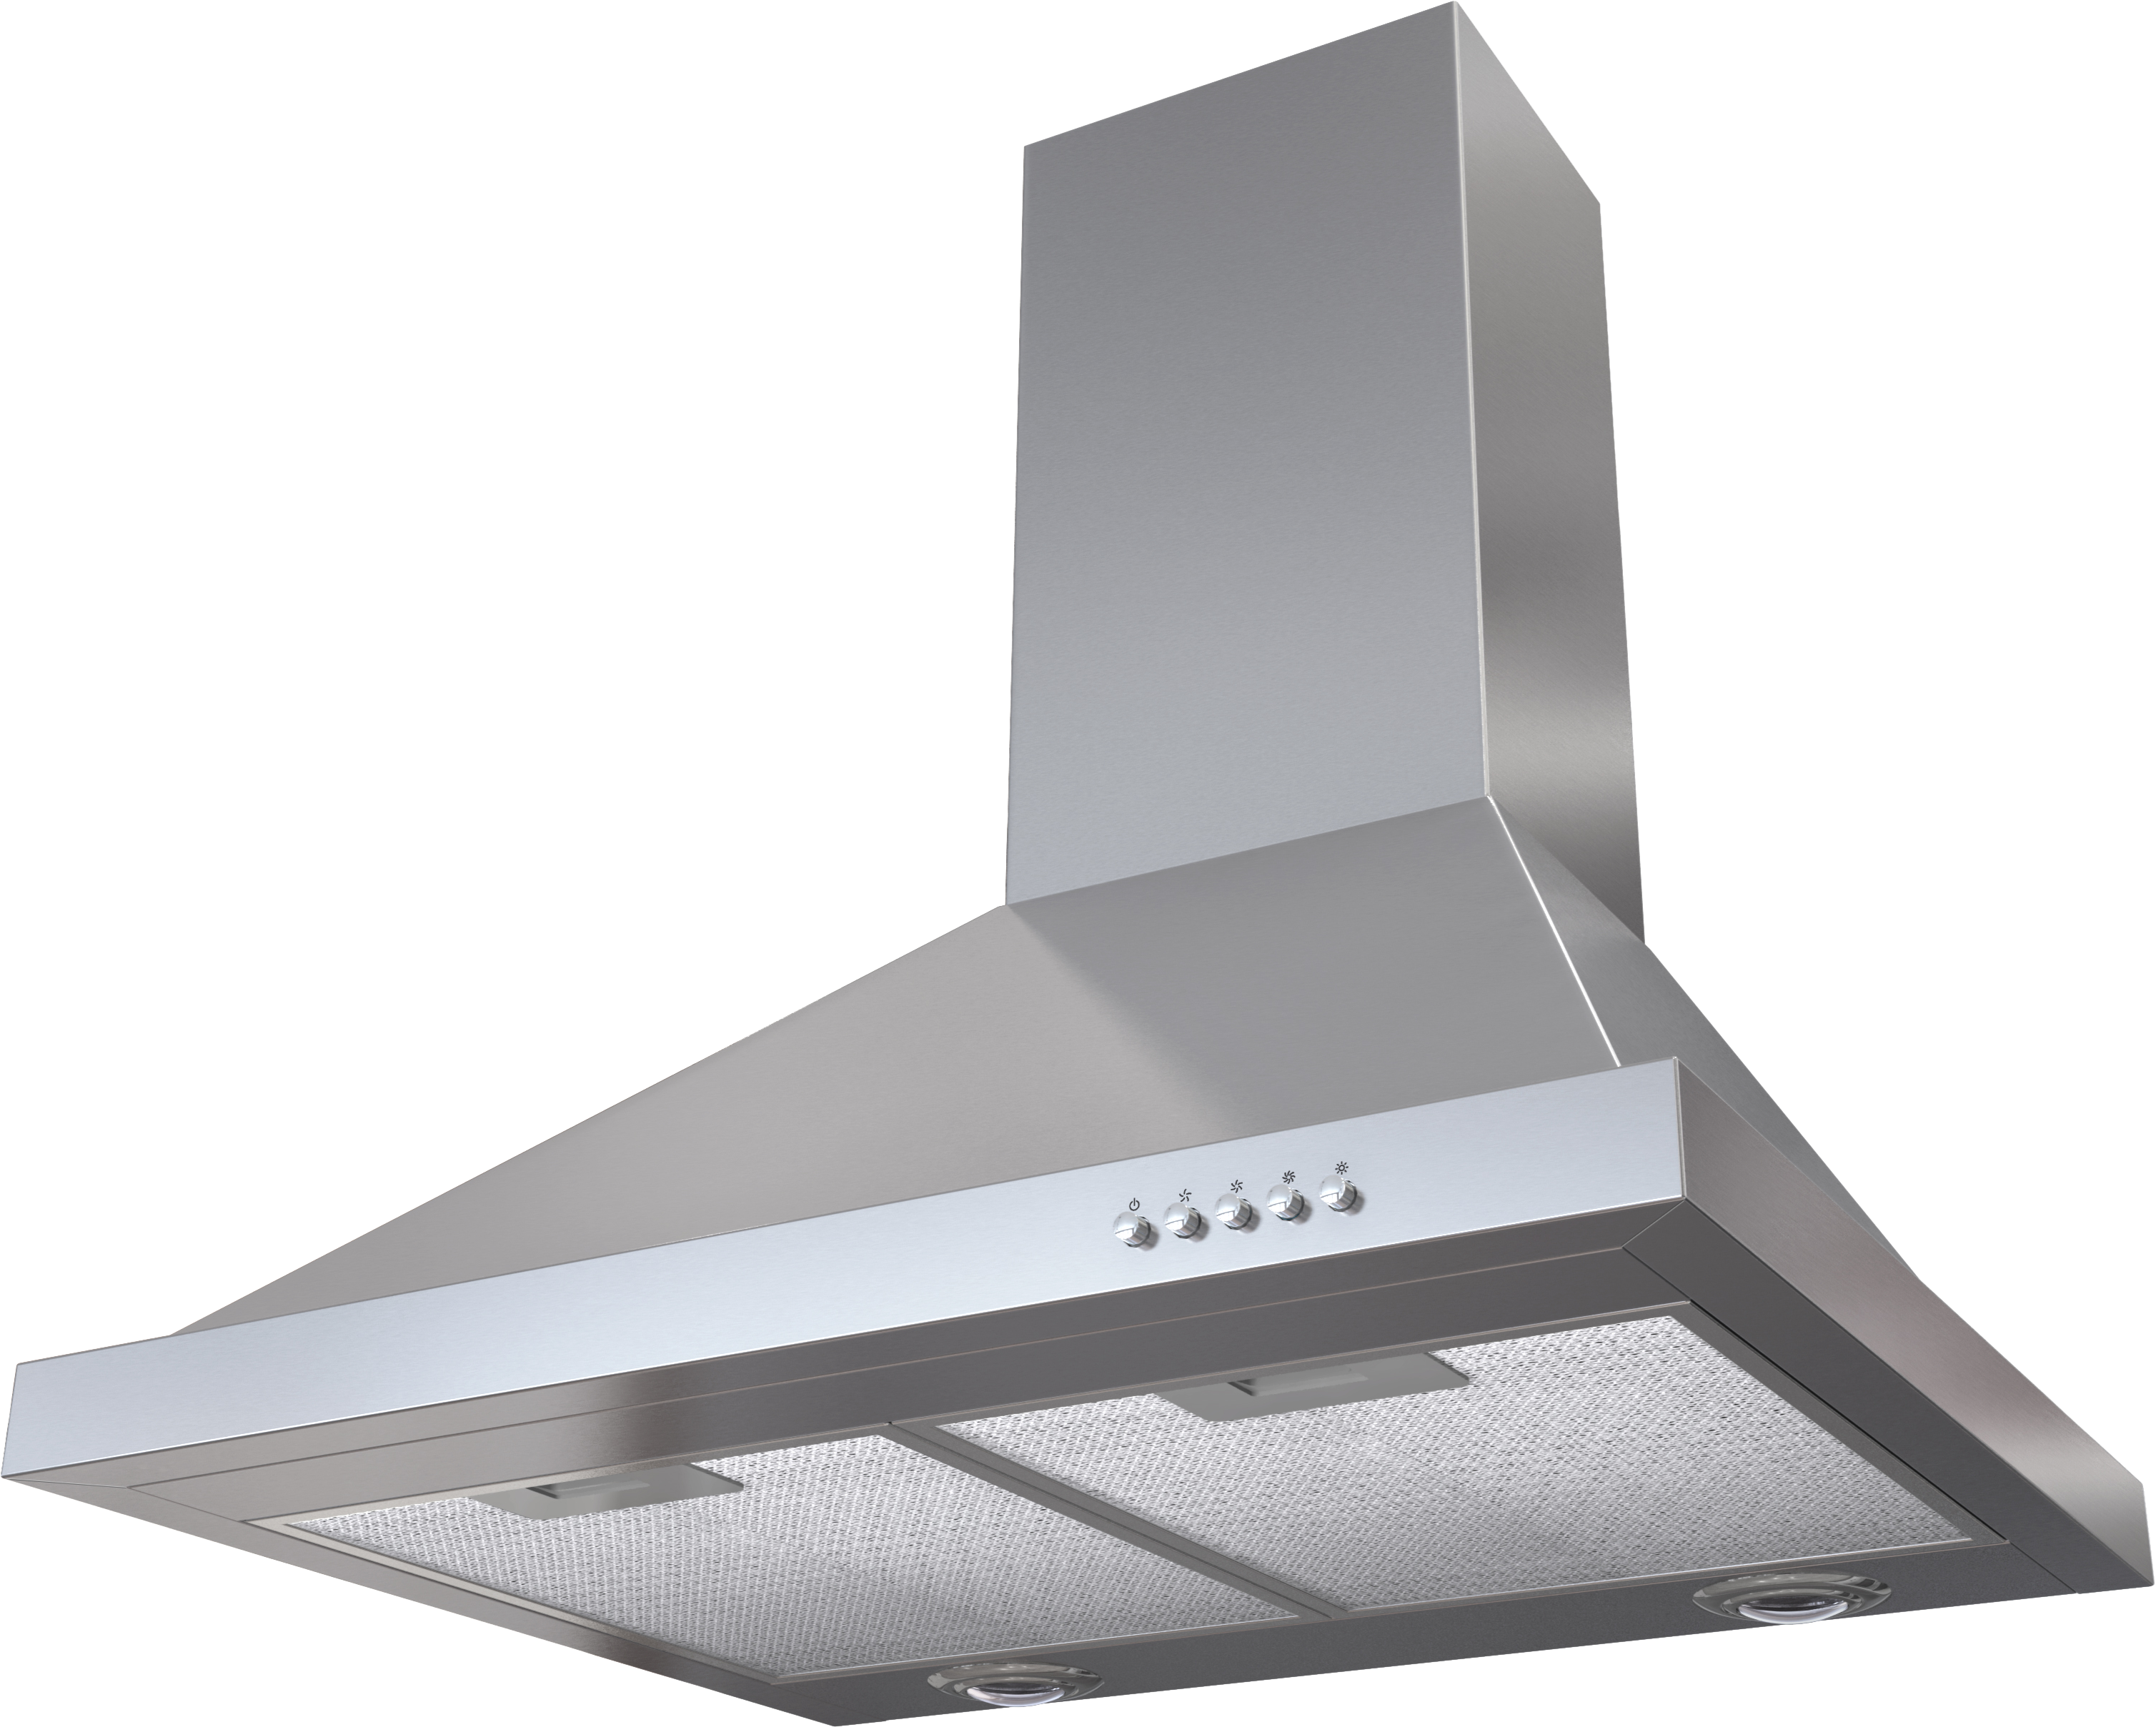 Unovent's Xtract Kitchen Rangehood illustration